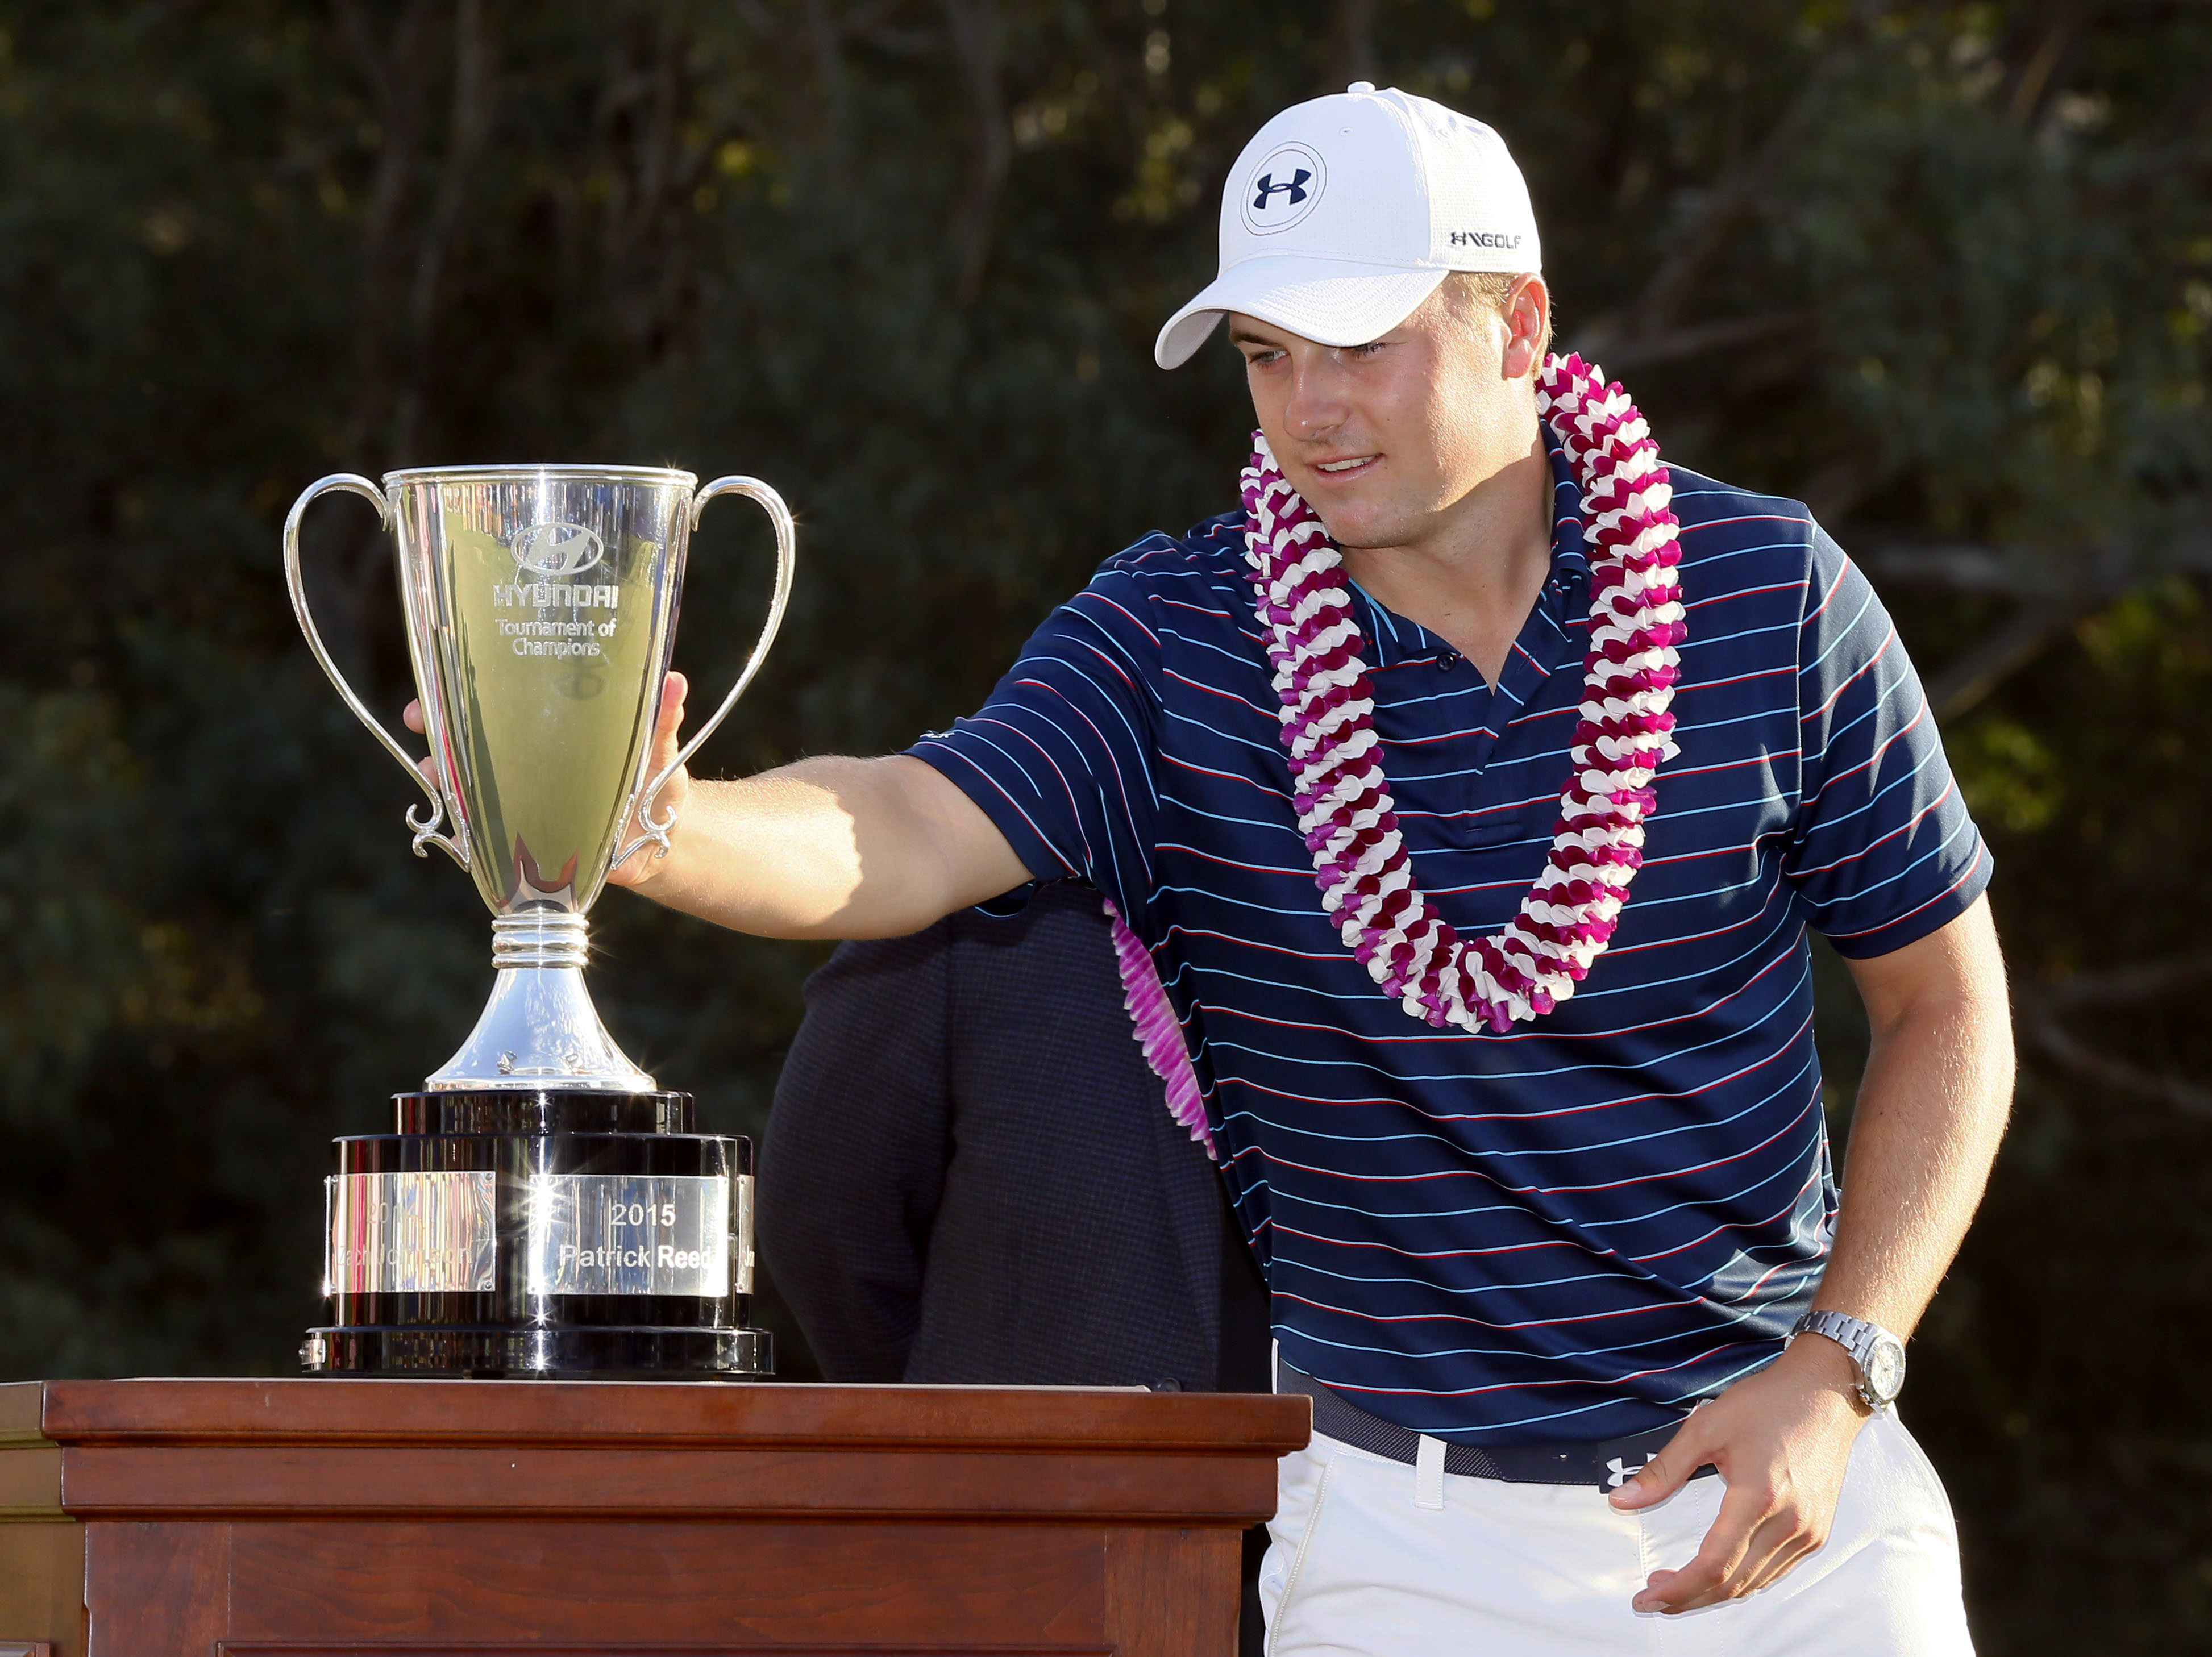 Jordan Spieth places the trophy on the podium after the final round of the Tournament of Champions golf event, Sunday, Jan. 10, 2016, at Kapalua Plantation Course in Kapalua, Hawaii. Spieth finished at 30 under par for the tournament win. (AP Photo/Matt Y